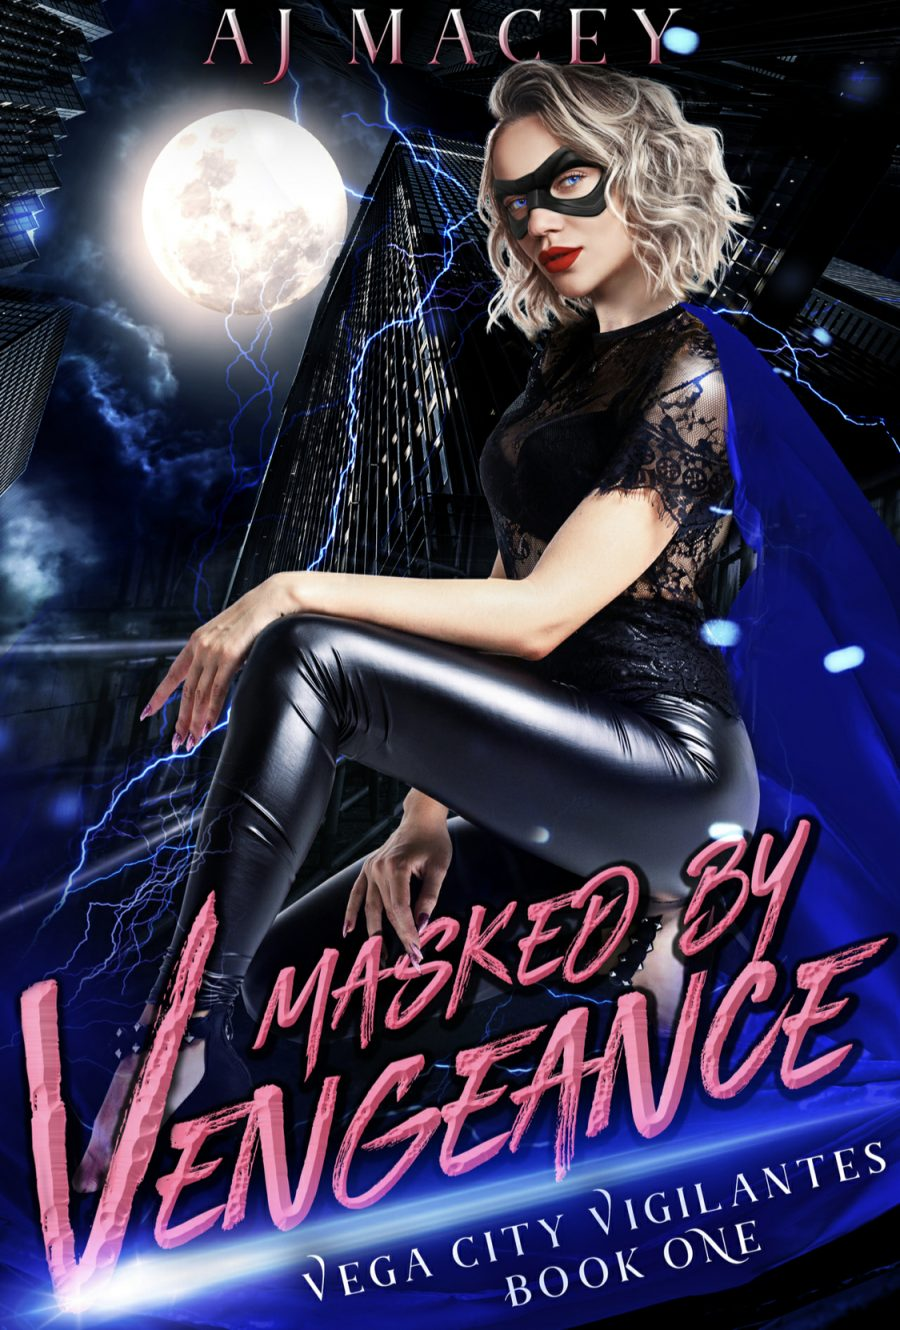 Masked by Vengeance by A.J. Macey - A Book Review #BookReview #FastBurn #ReverseHarem #RH #WhyChoose #SuperHero #Mystery #Cliffhanger #KindleUnlimited #KU